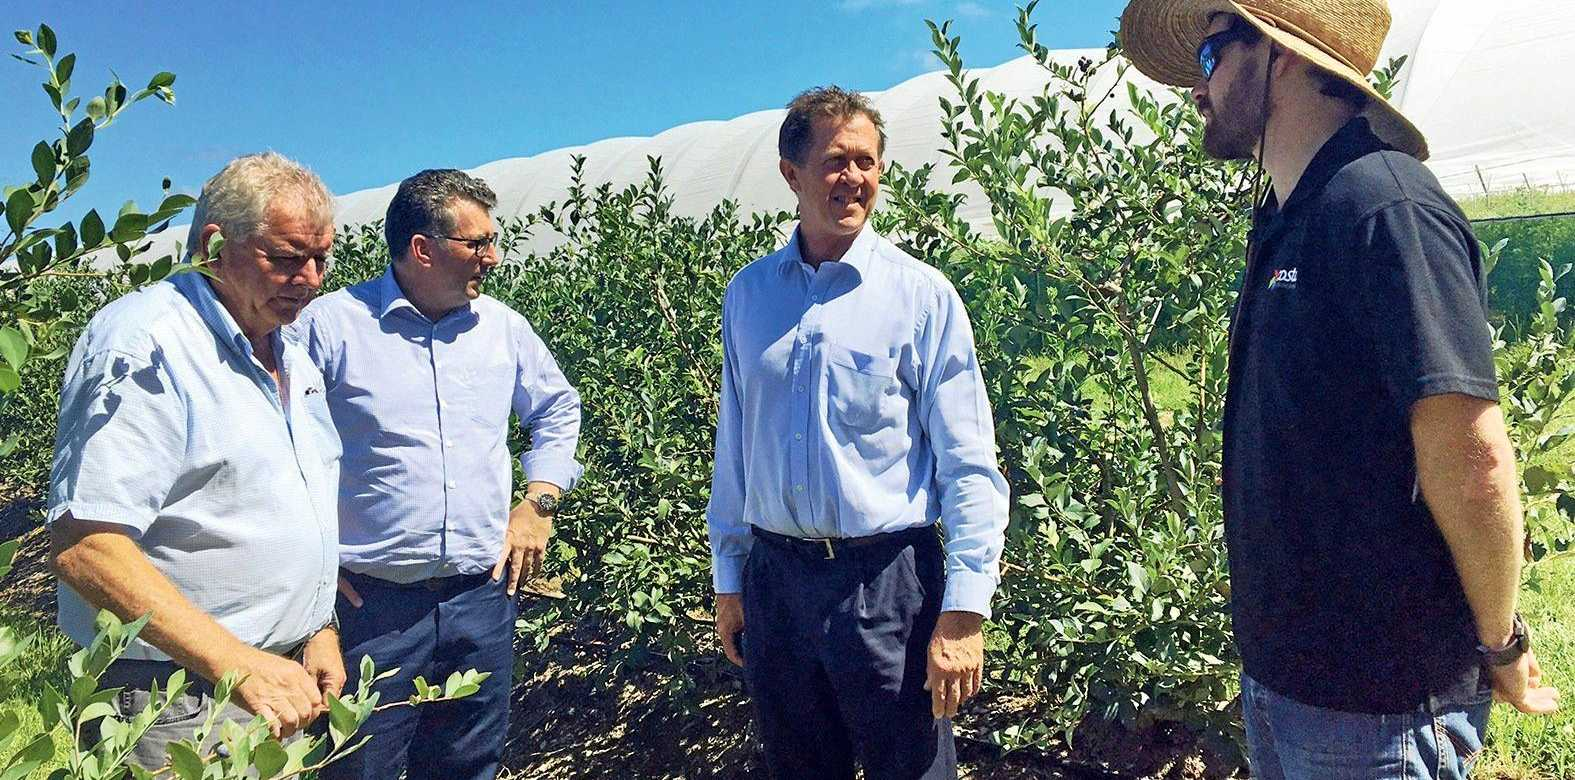 Access to the Chinese market will be a massive driver of growth for the Mid North Coast agriculture sector - which supplies 75% of Australian blueberries.